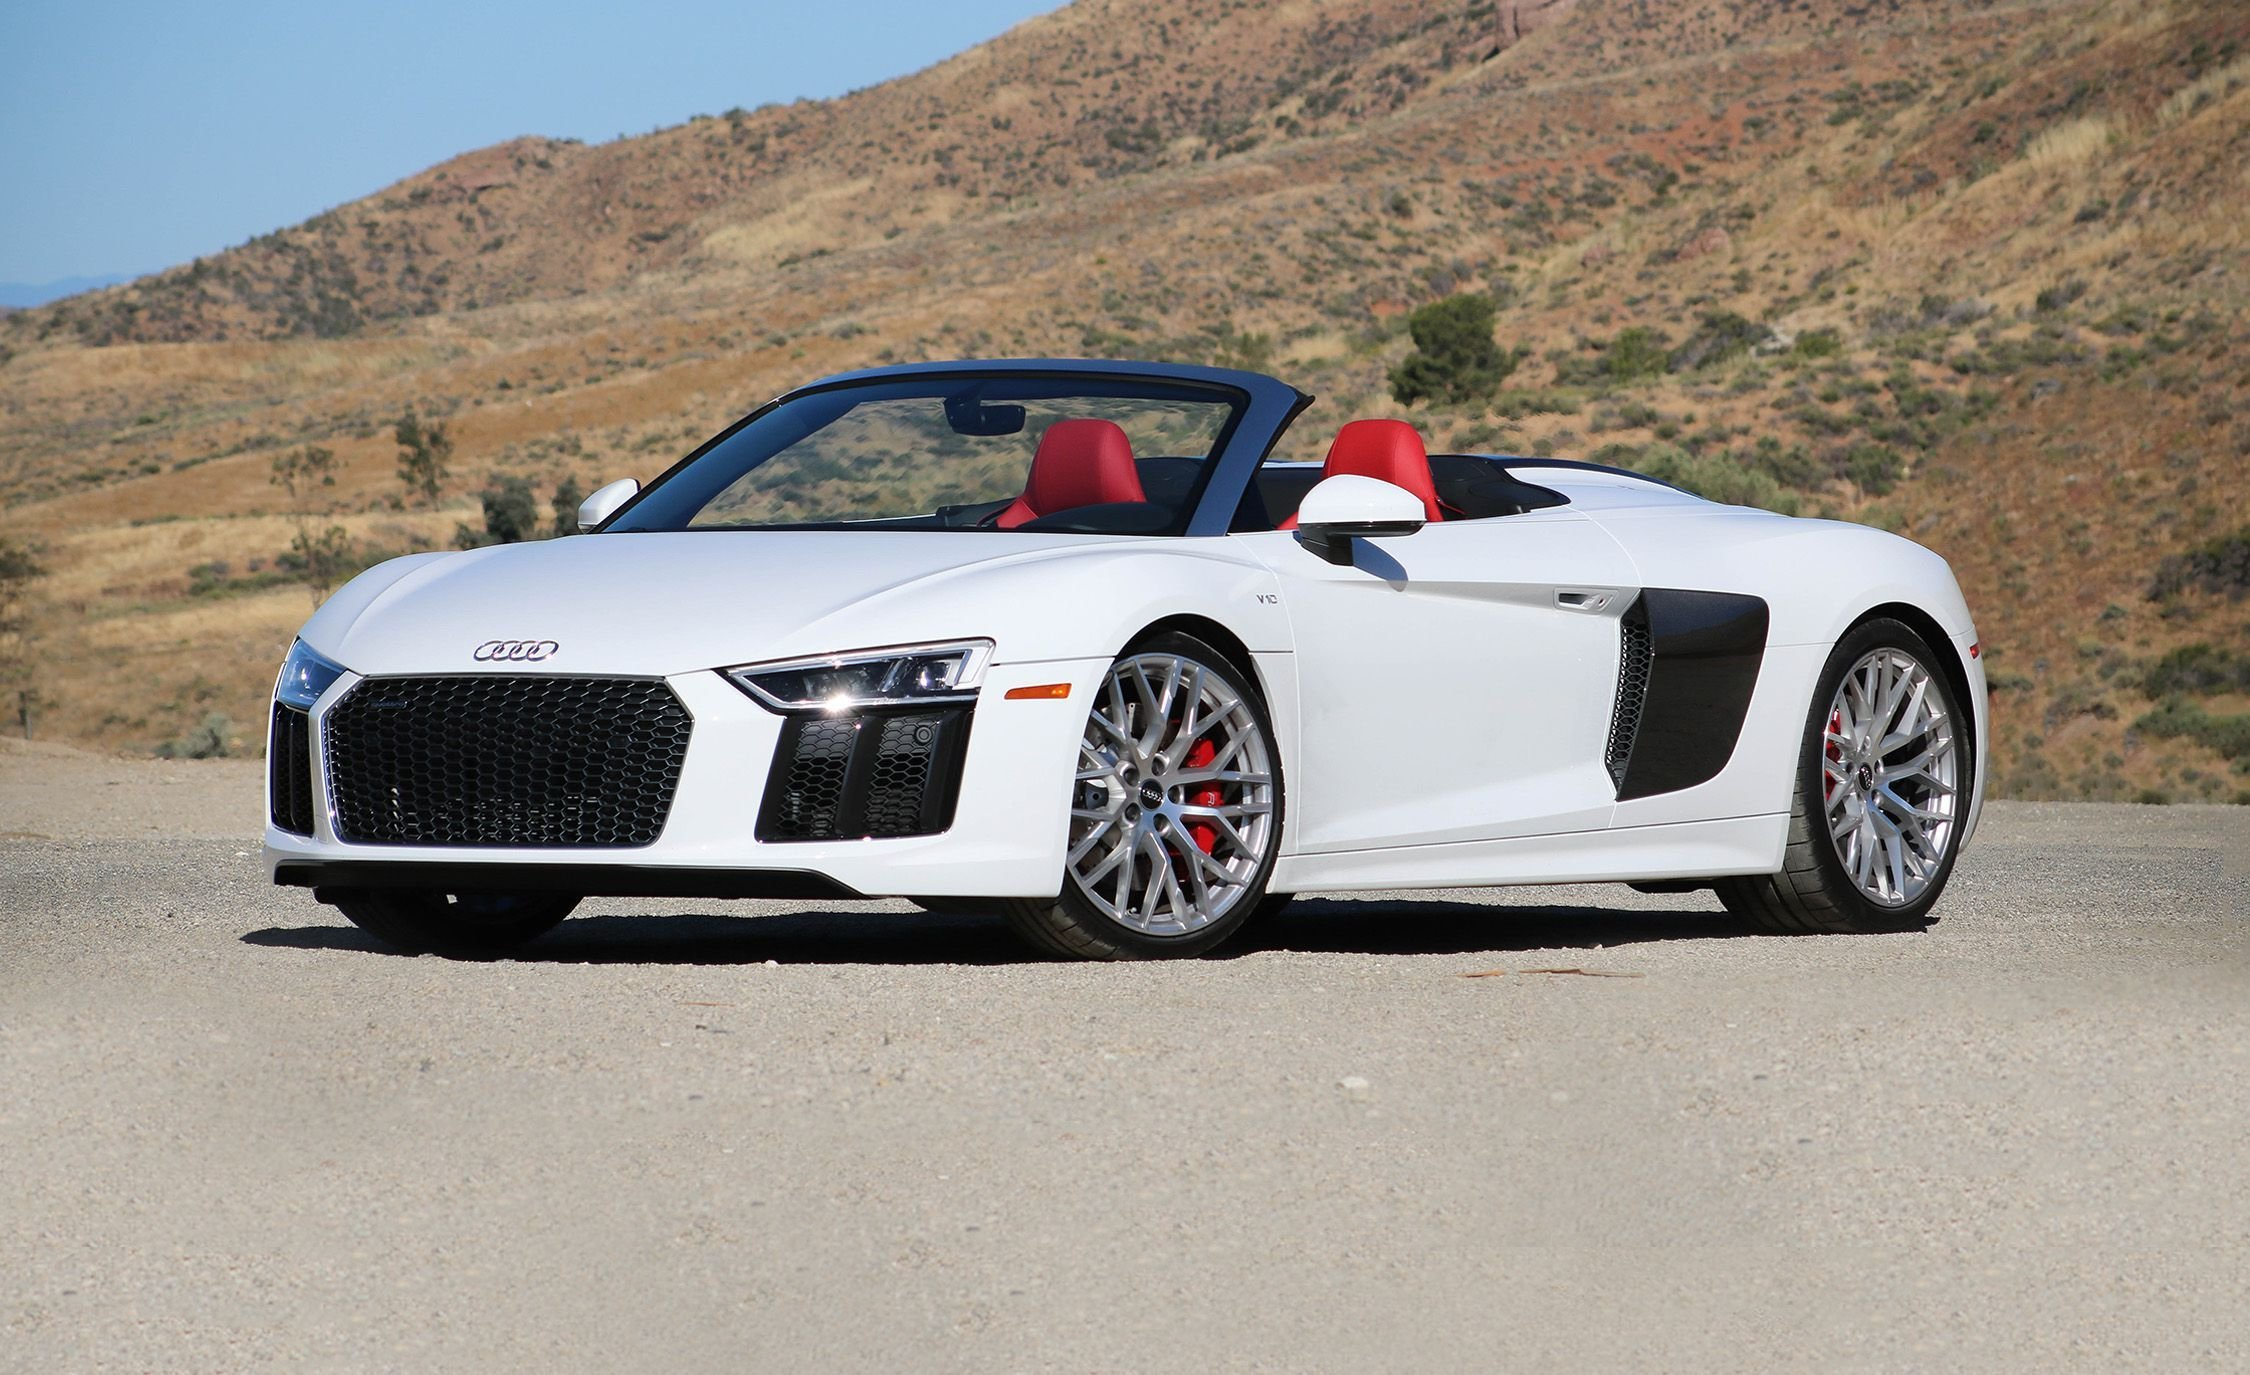 Latest 2017 Audi R8 Spyder Instrumented Test Review Car And Free Download